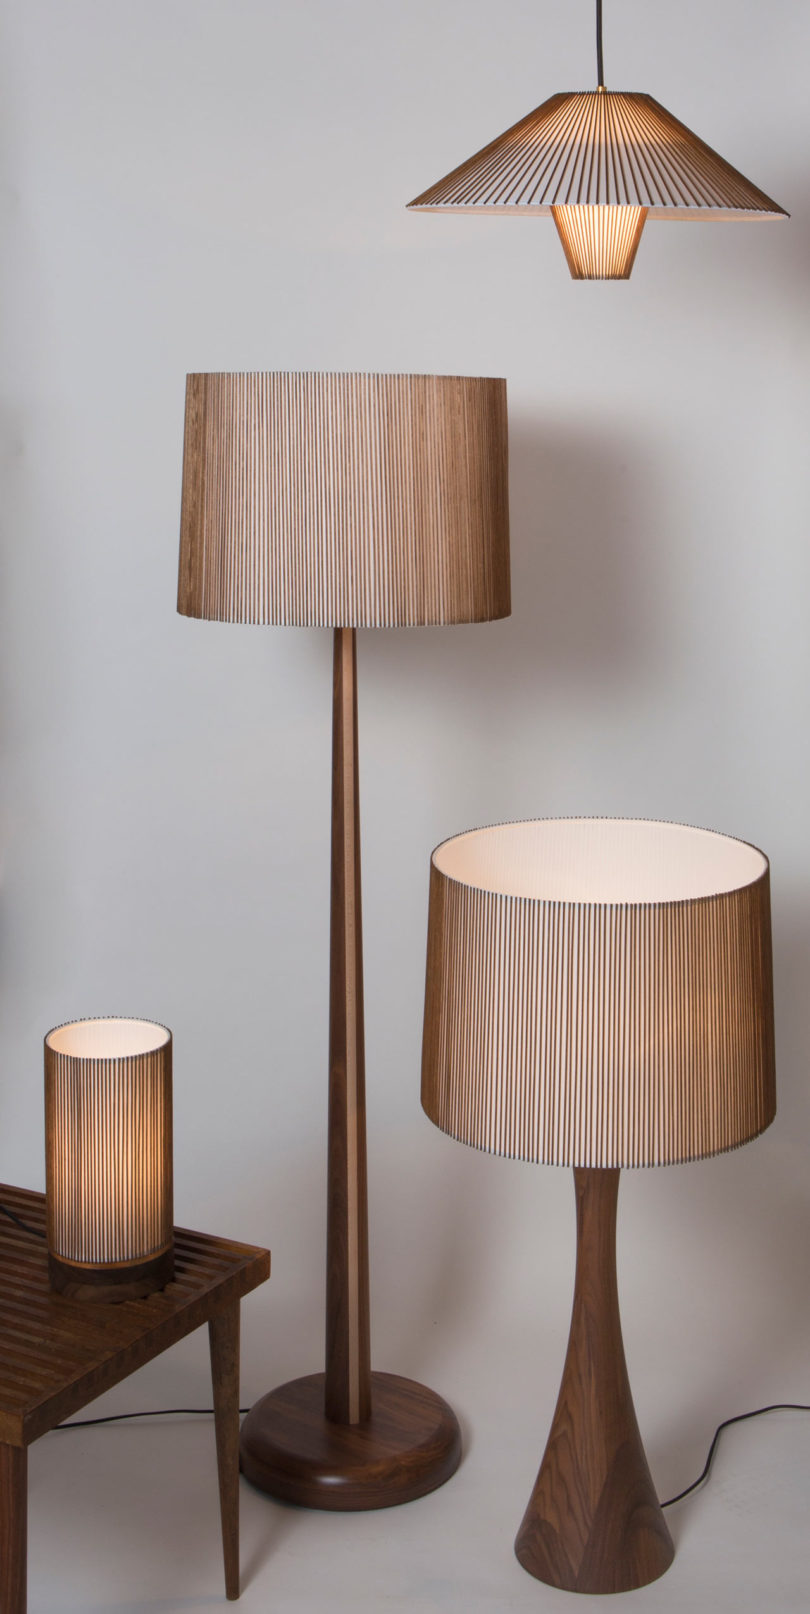 Smilow design launches authentic mid century lighting designs there are four designs being launched two table lamps a hanging pendant and a floor lamp each fixture merges sculptural forms with a mid century geotapseo Gallery